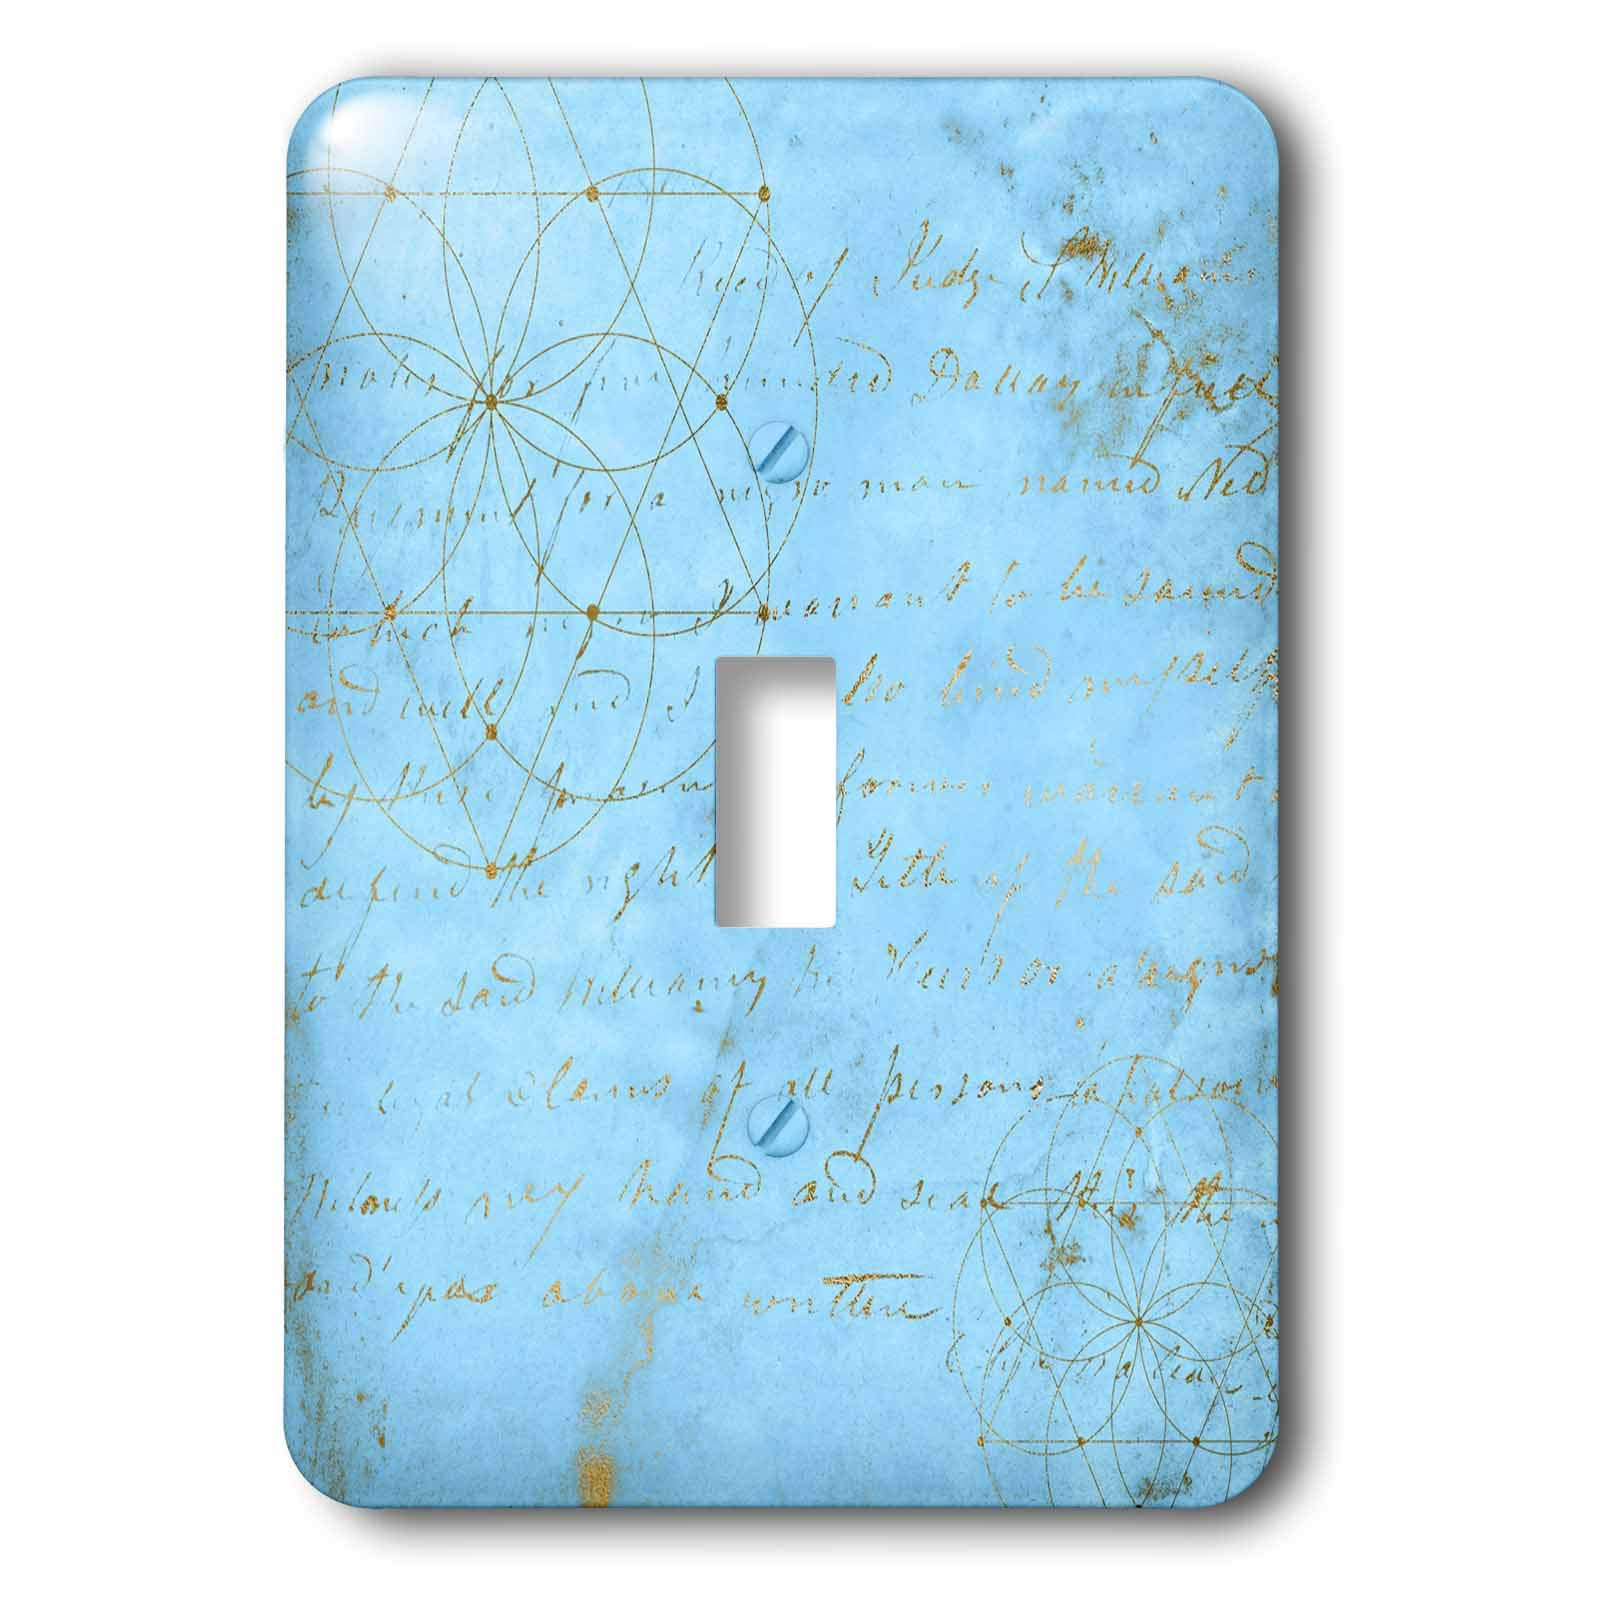 3dRose Uta Naumann Faux Glitter Pattern - Image of Sky Blue and Gold Metal Foil Vintage Luxury Text Pattern - Light Switch Covers - single toggle switch (lsp_290168_1)